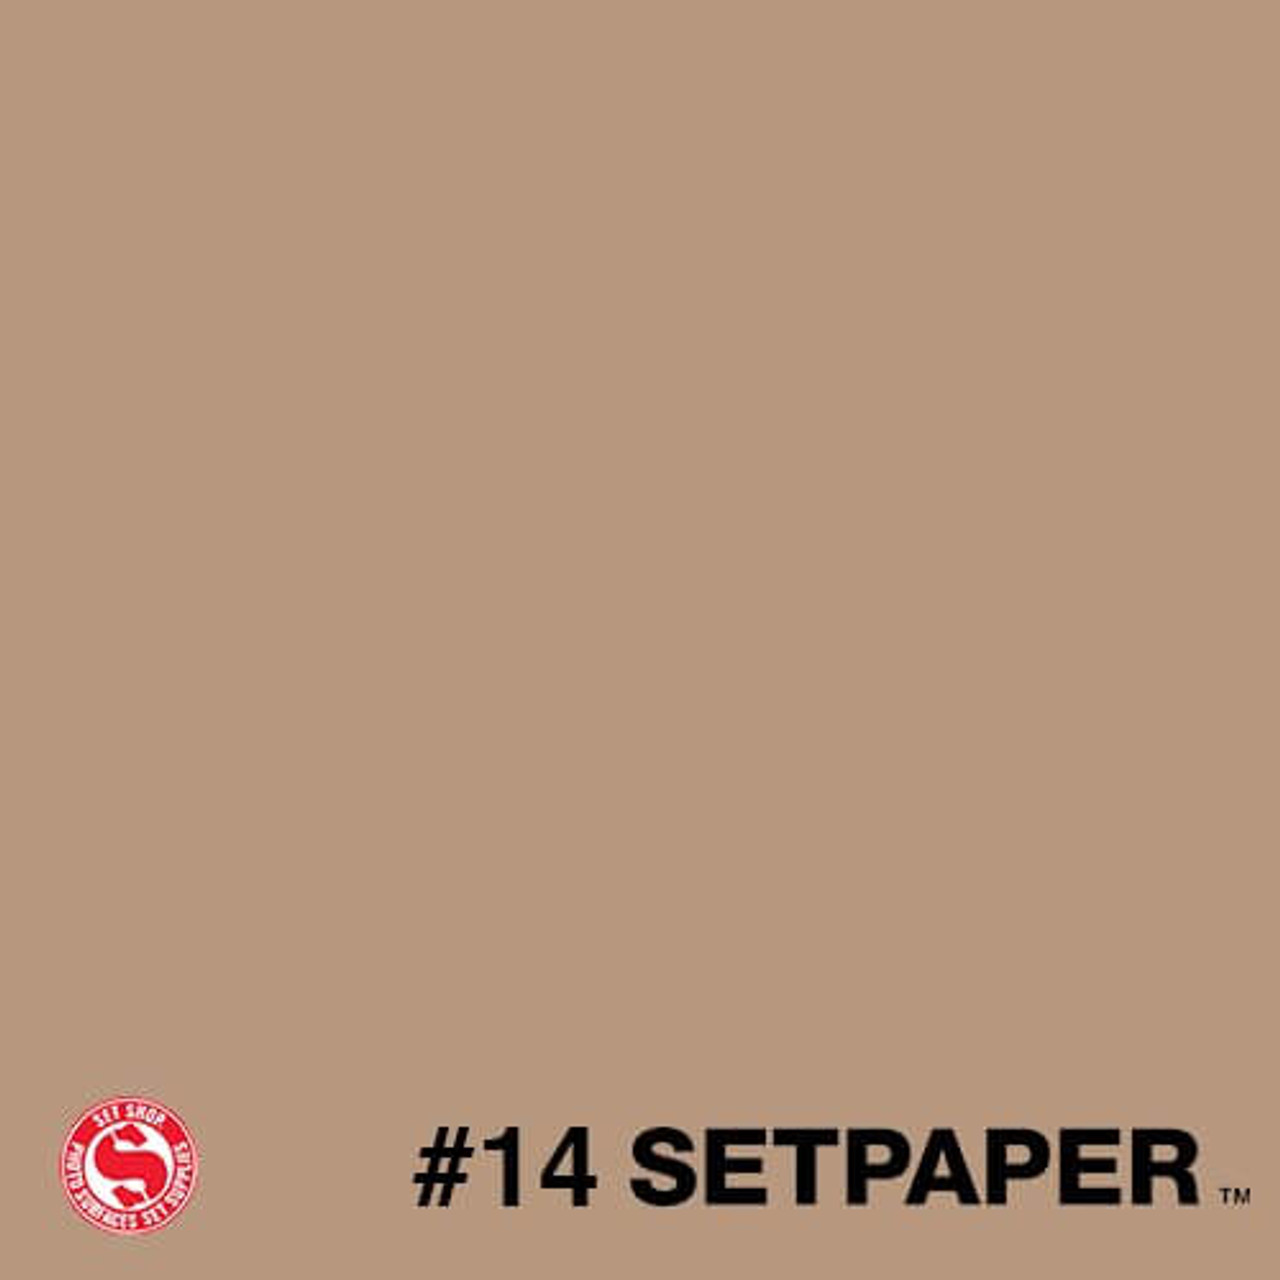 "114 SETPAPER - NATURAL 53"" x 36' (1.3 x 11m)"